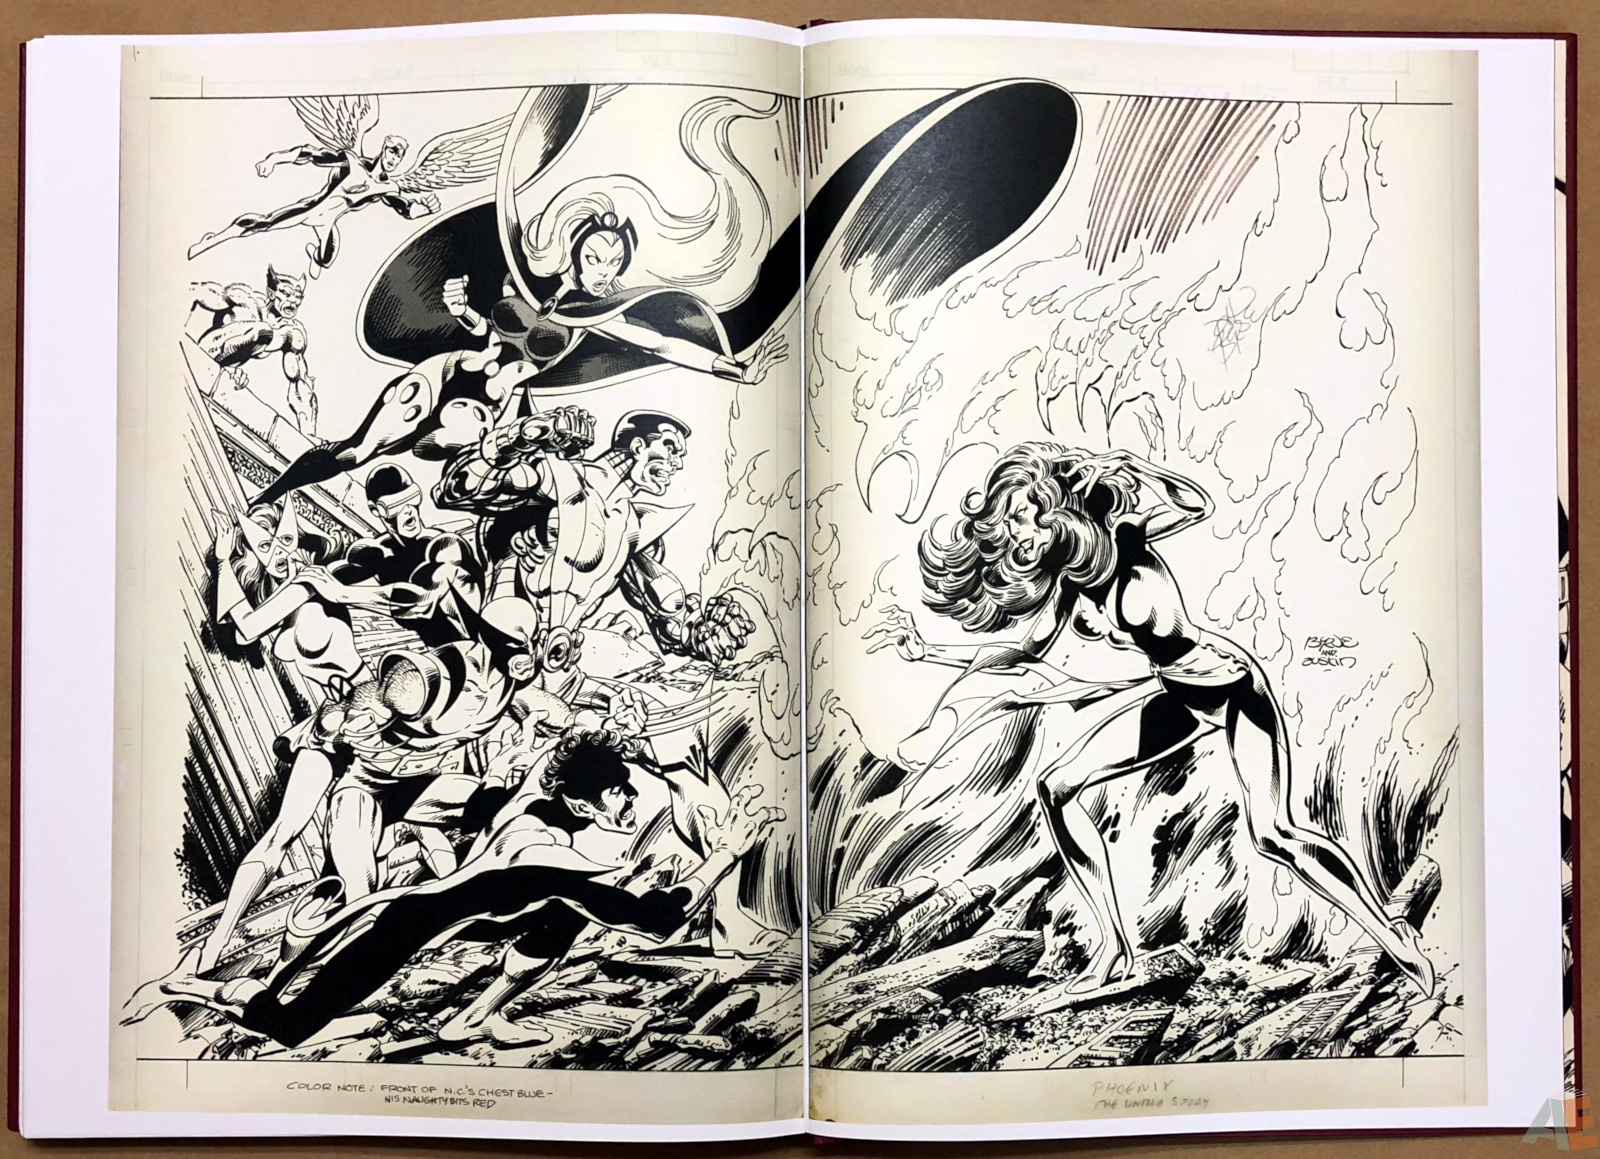 John Byrne's X-Men Artifact Edition 48